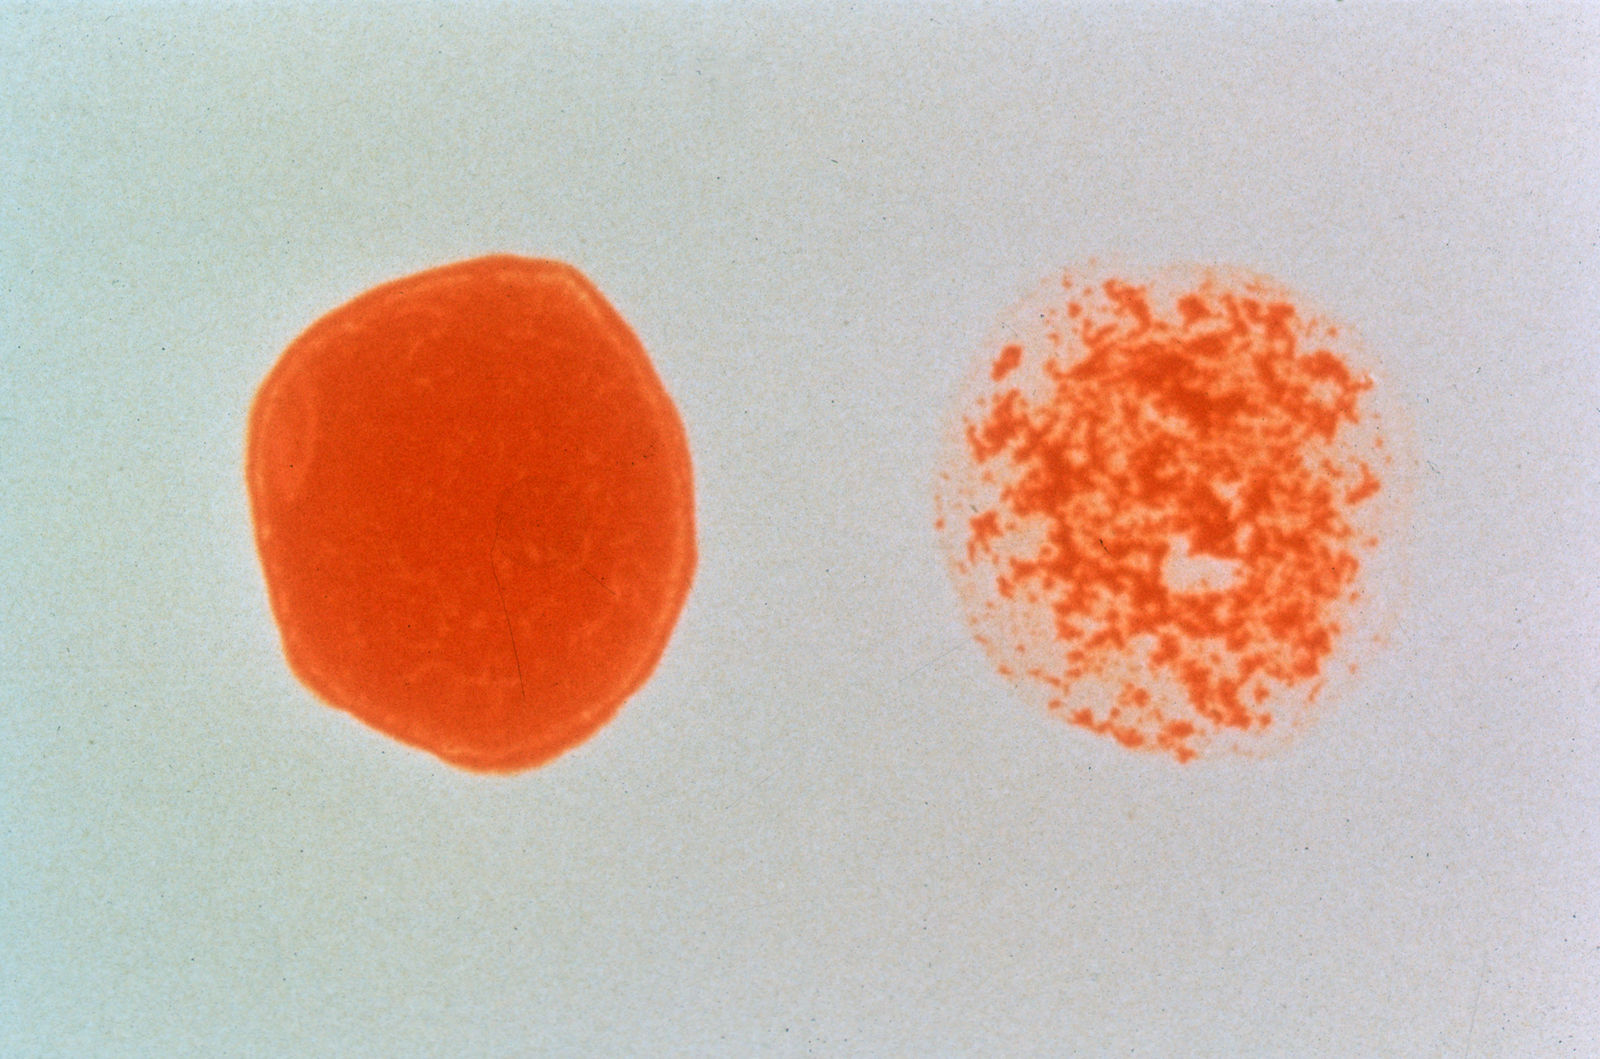 CSIRO_ScienceImage_2724_HIVpositive_blood_cell_vs_HIVnegative_Blood_Cell